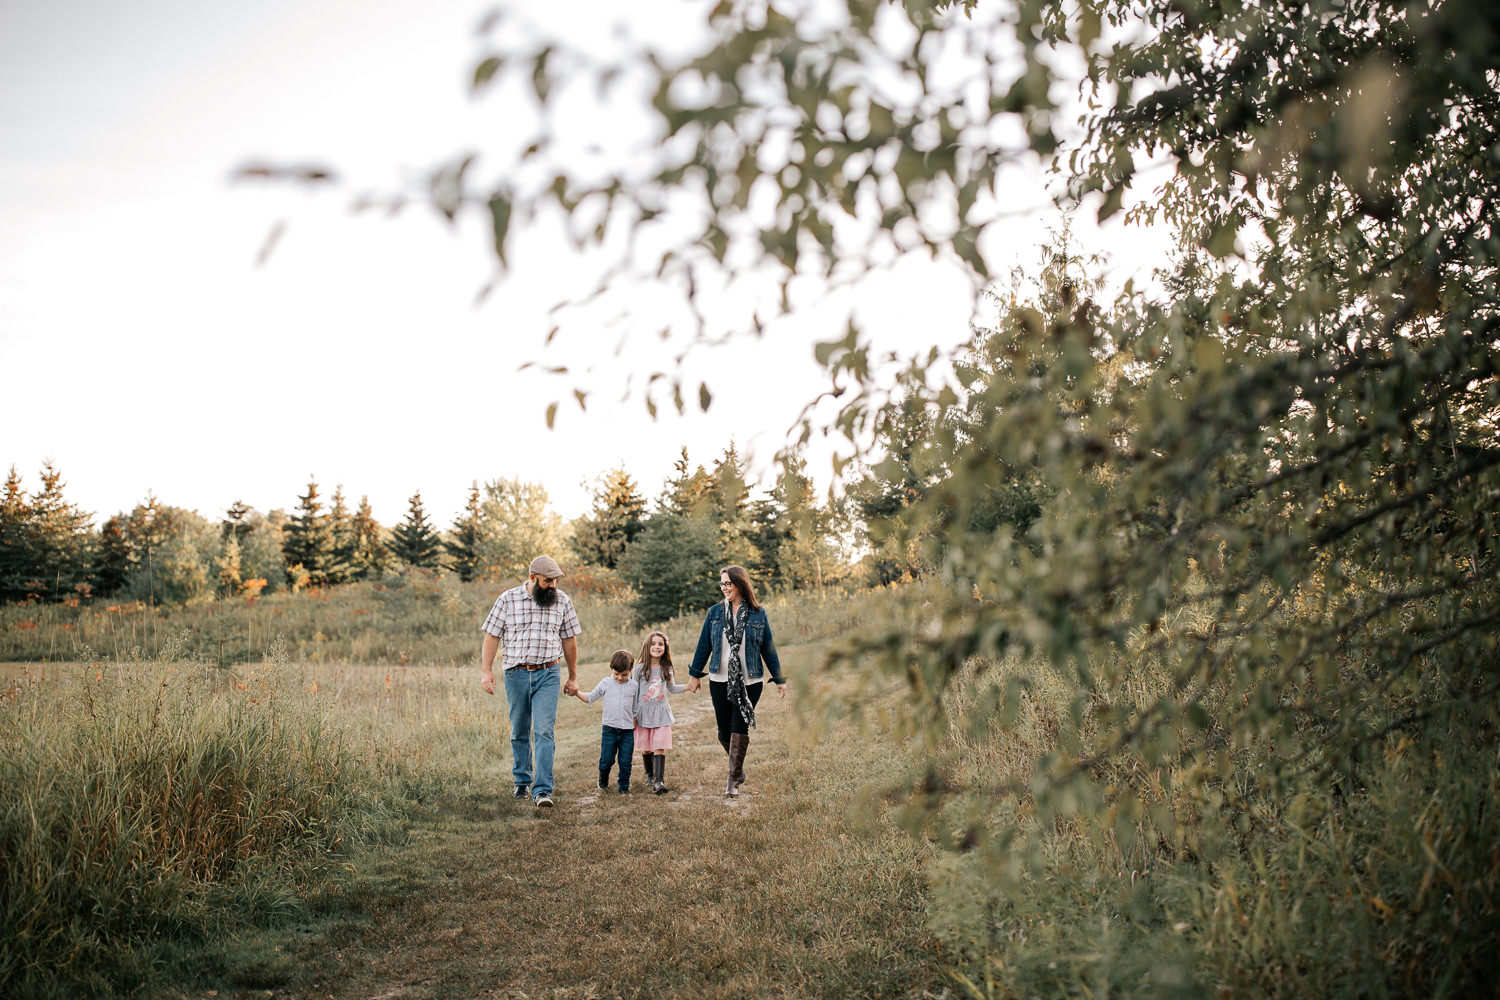 family of 4 holding hands, walking down path in grassy field, smiling at each other, trees in foreground - Barrie Lifestyle Photos